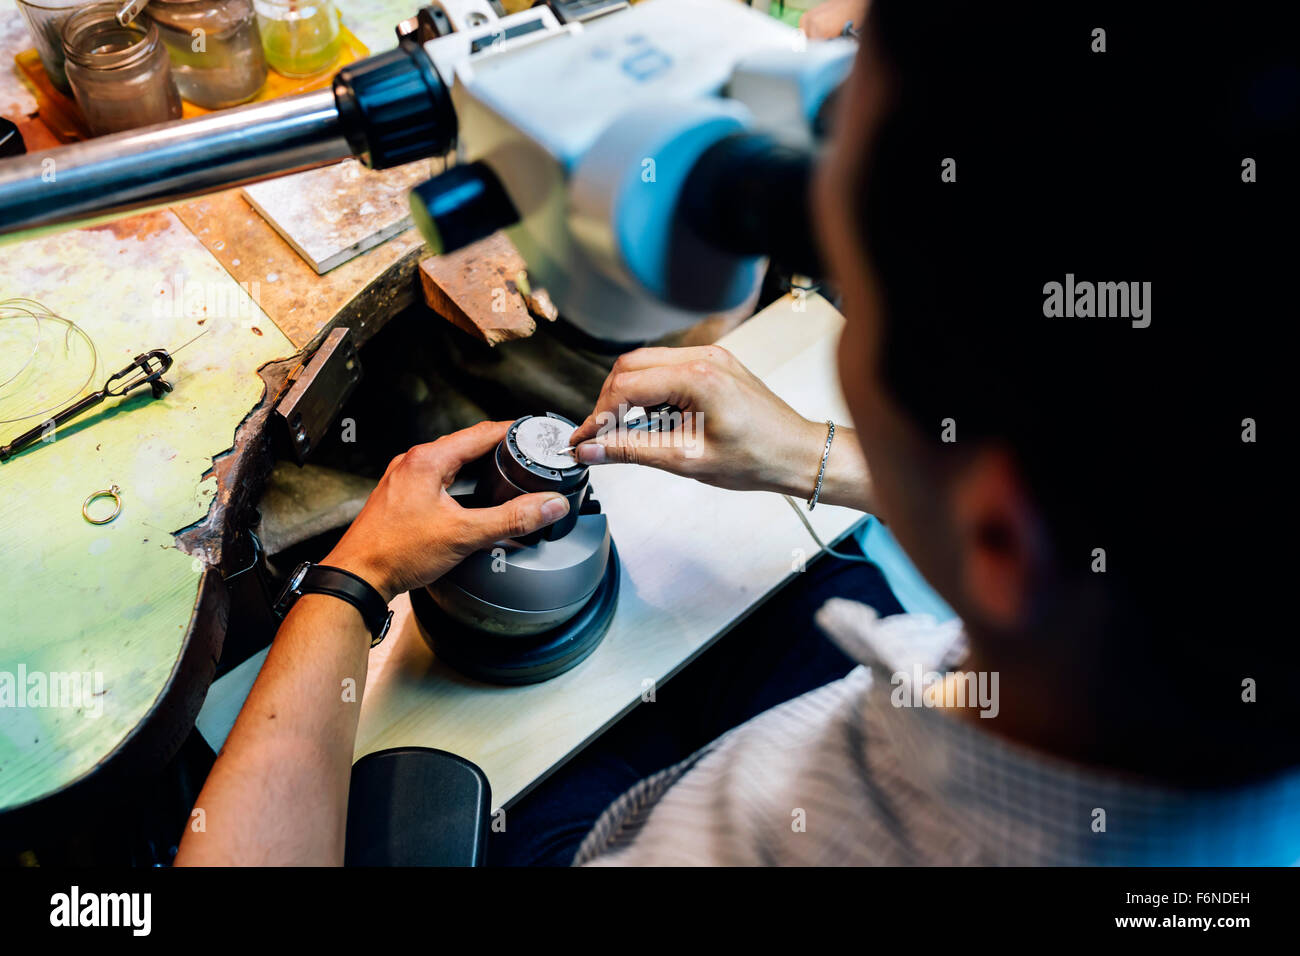 Jeweler working on metals with optical device that allows for precision work - Stock Image